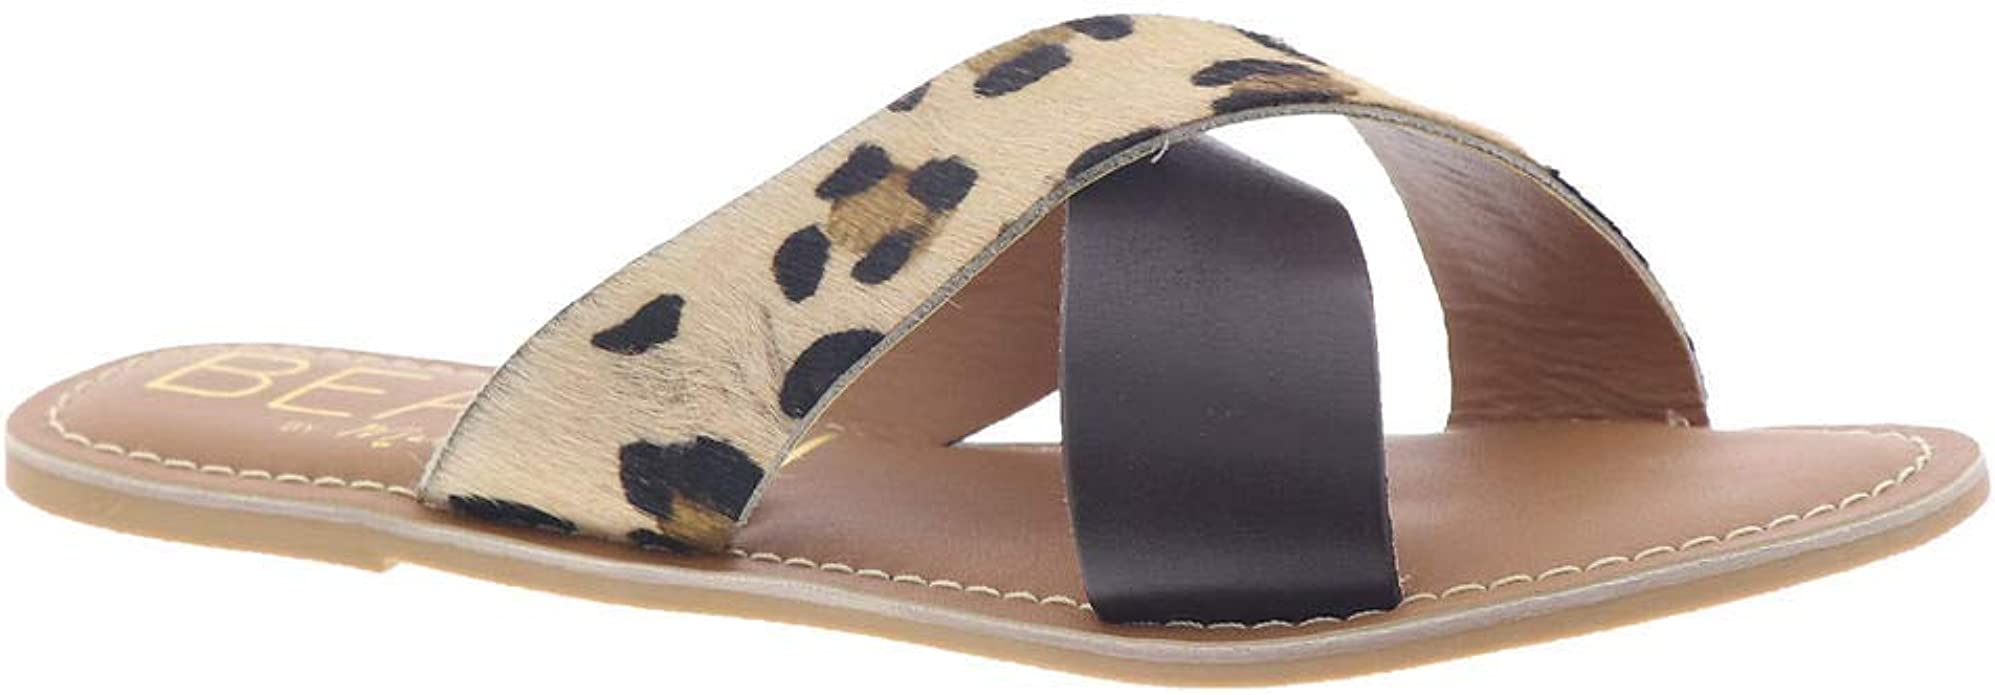 Coconuts Womens Pebble Leather Open Toe